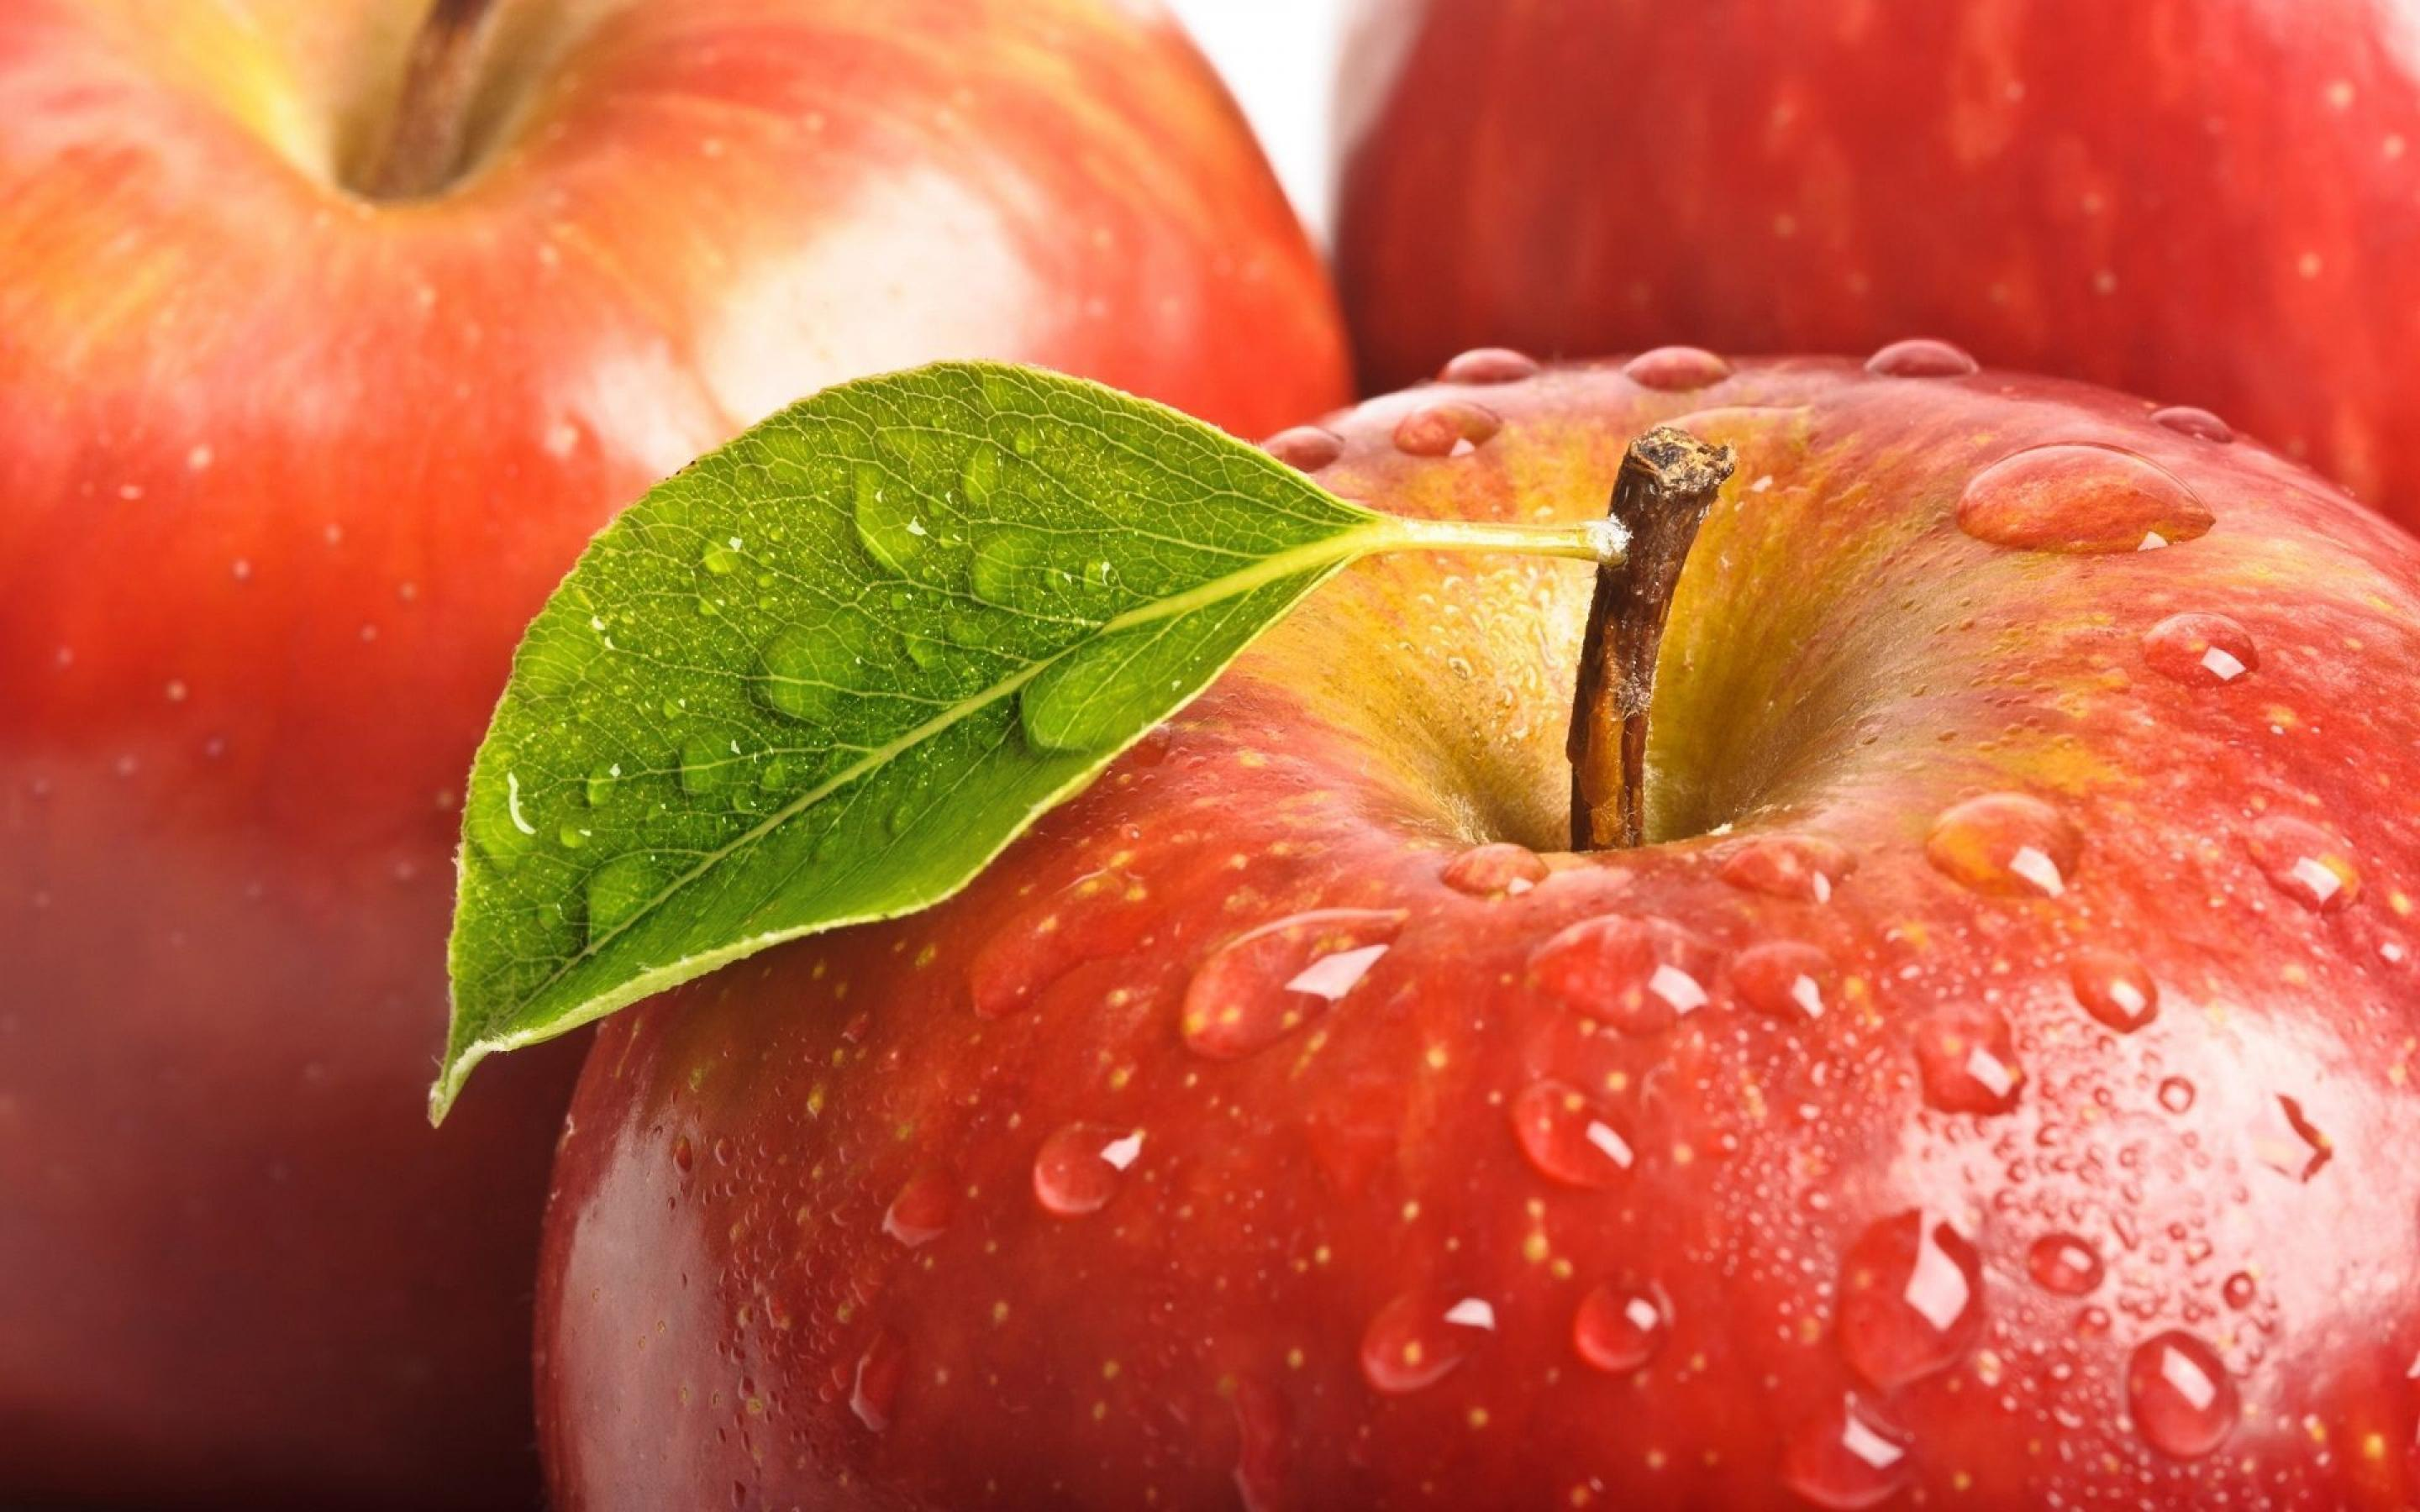 red-apples-with-water-drops